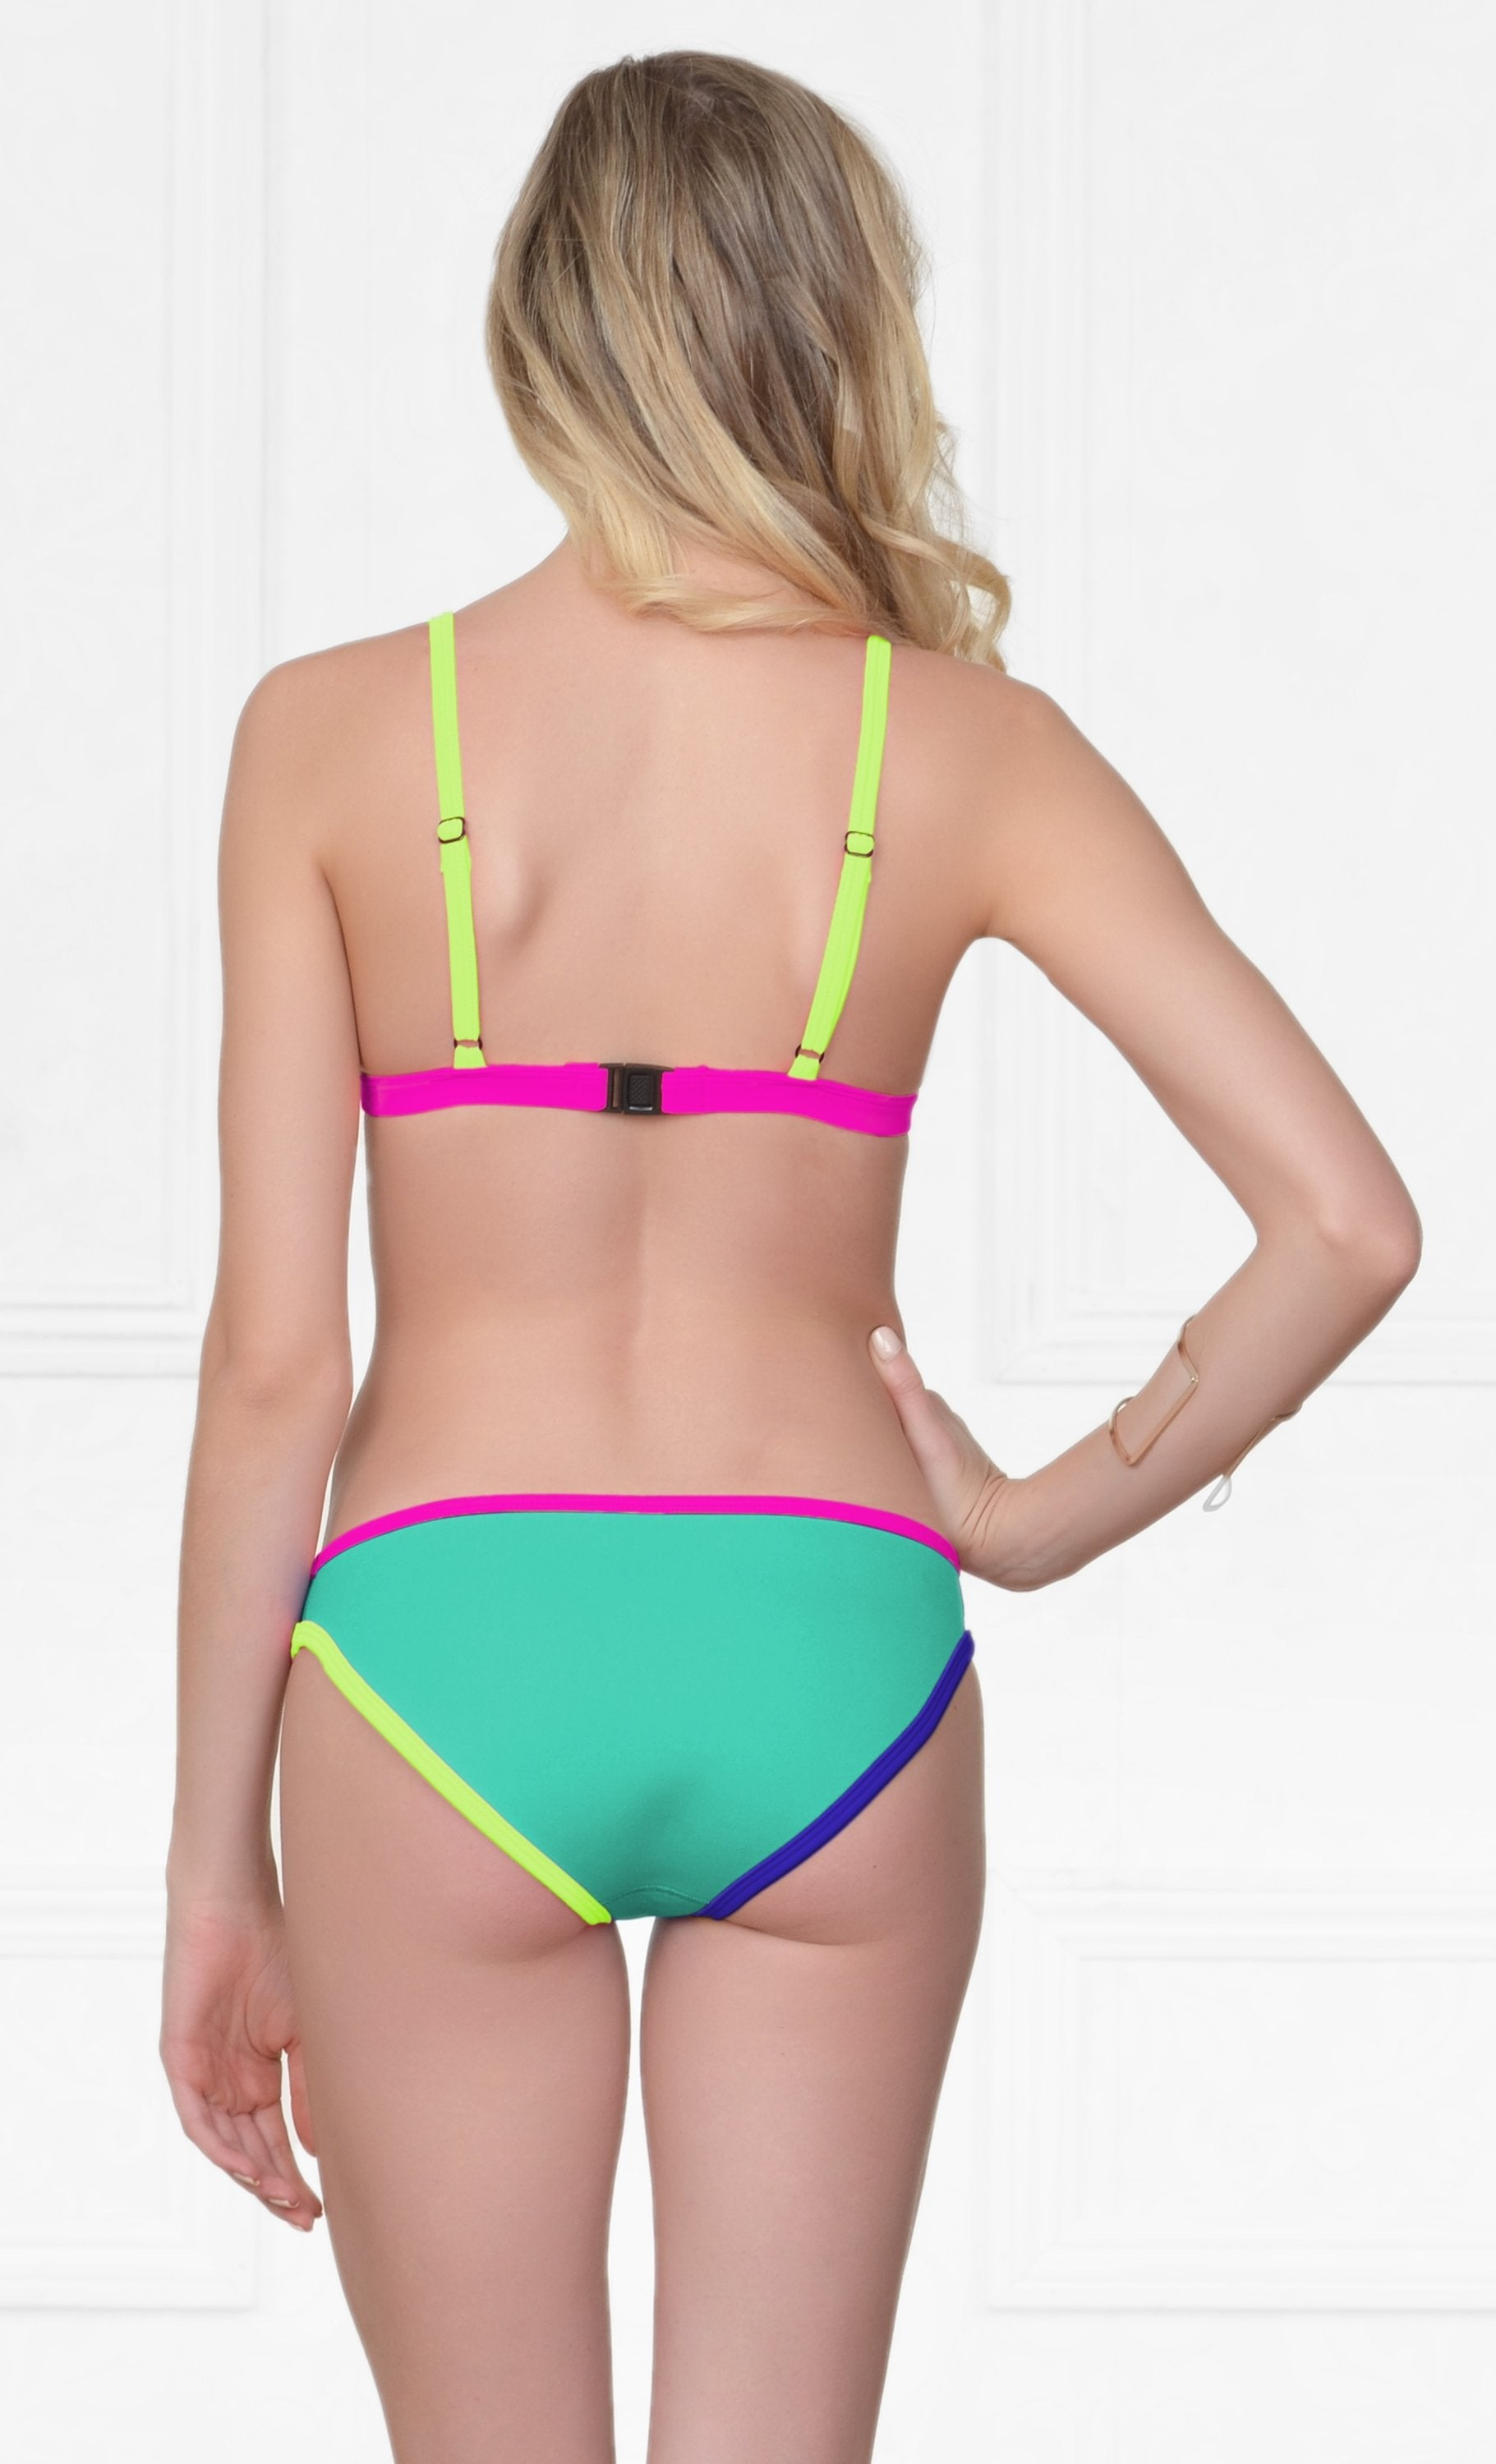 Indie XO Horseshoe Bay Neoprene Mint Green Blue Yellow Pink Spaghetti Strap Triangle Top Hipster Brief Two Piece Bikini Swimsuit Set